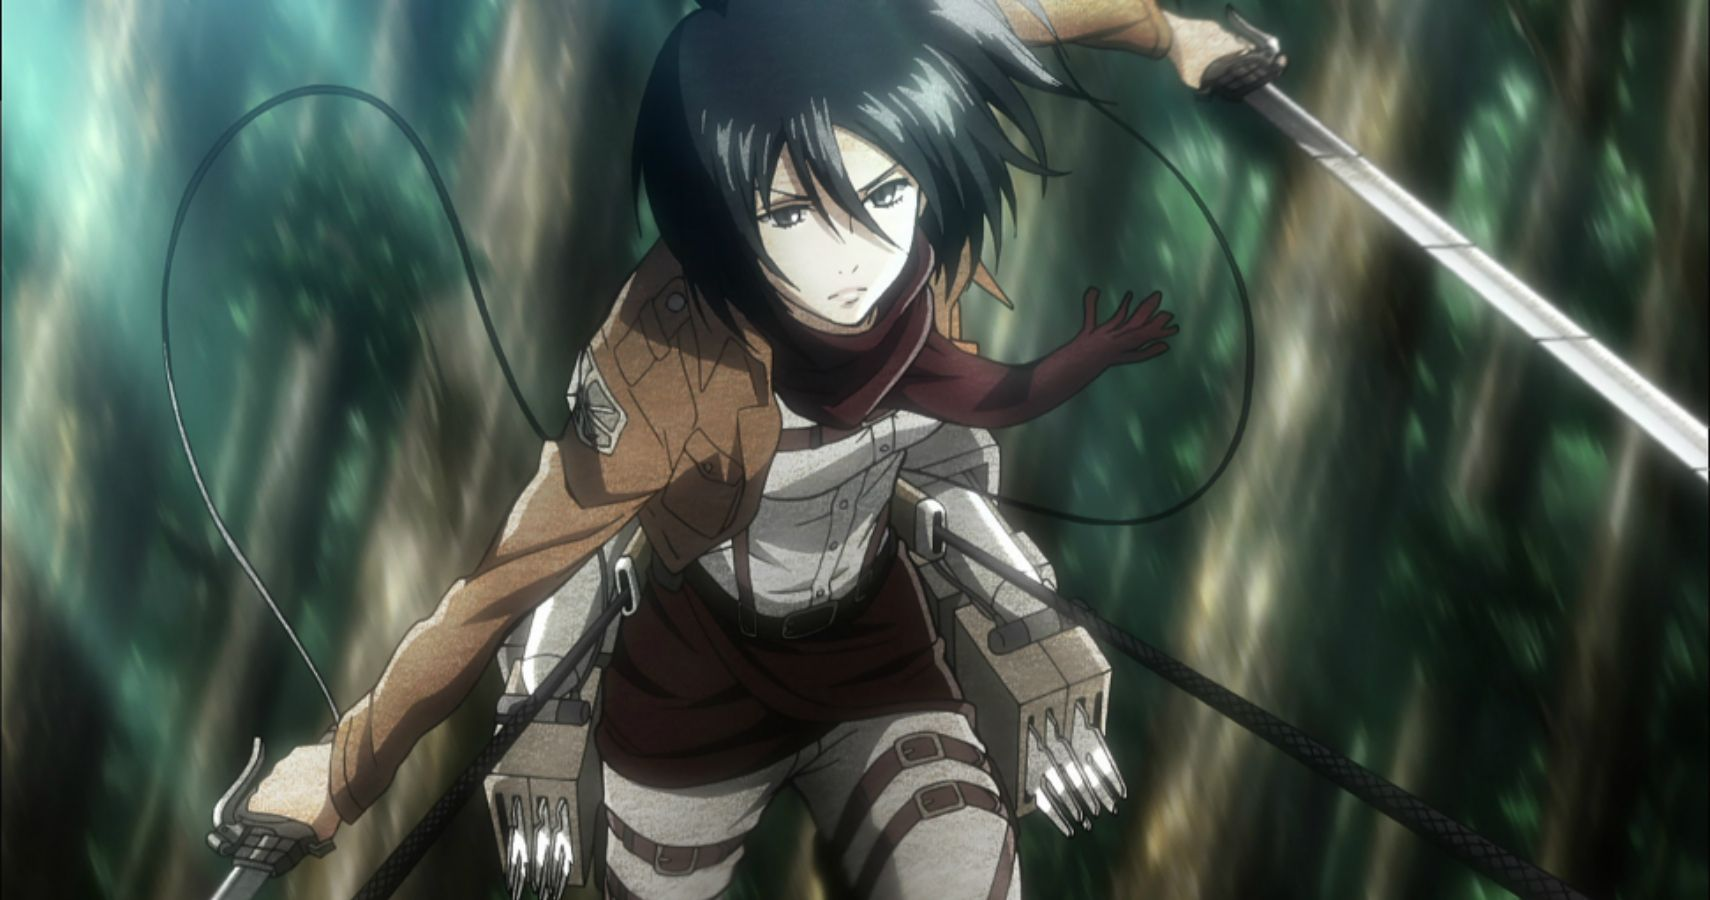 What Time Attack On Titan Airs On Crunchyroll In Every Region